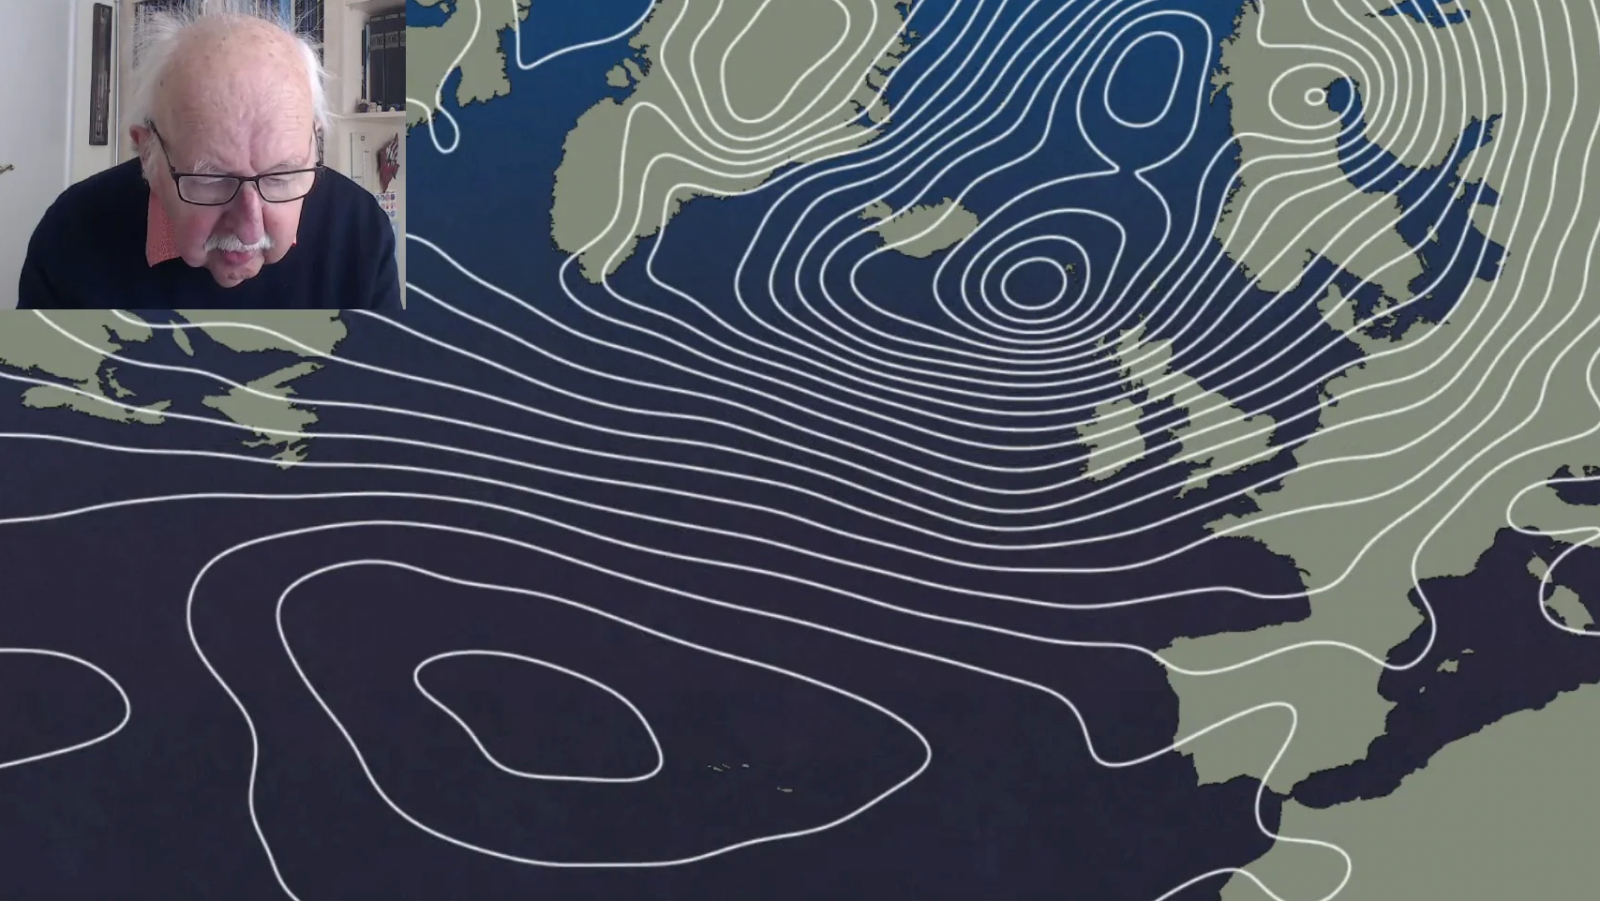 Michael Fish: Storm Dennis Rattling In To Bring Wind, Rain and Flooding This Weekend